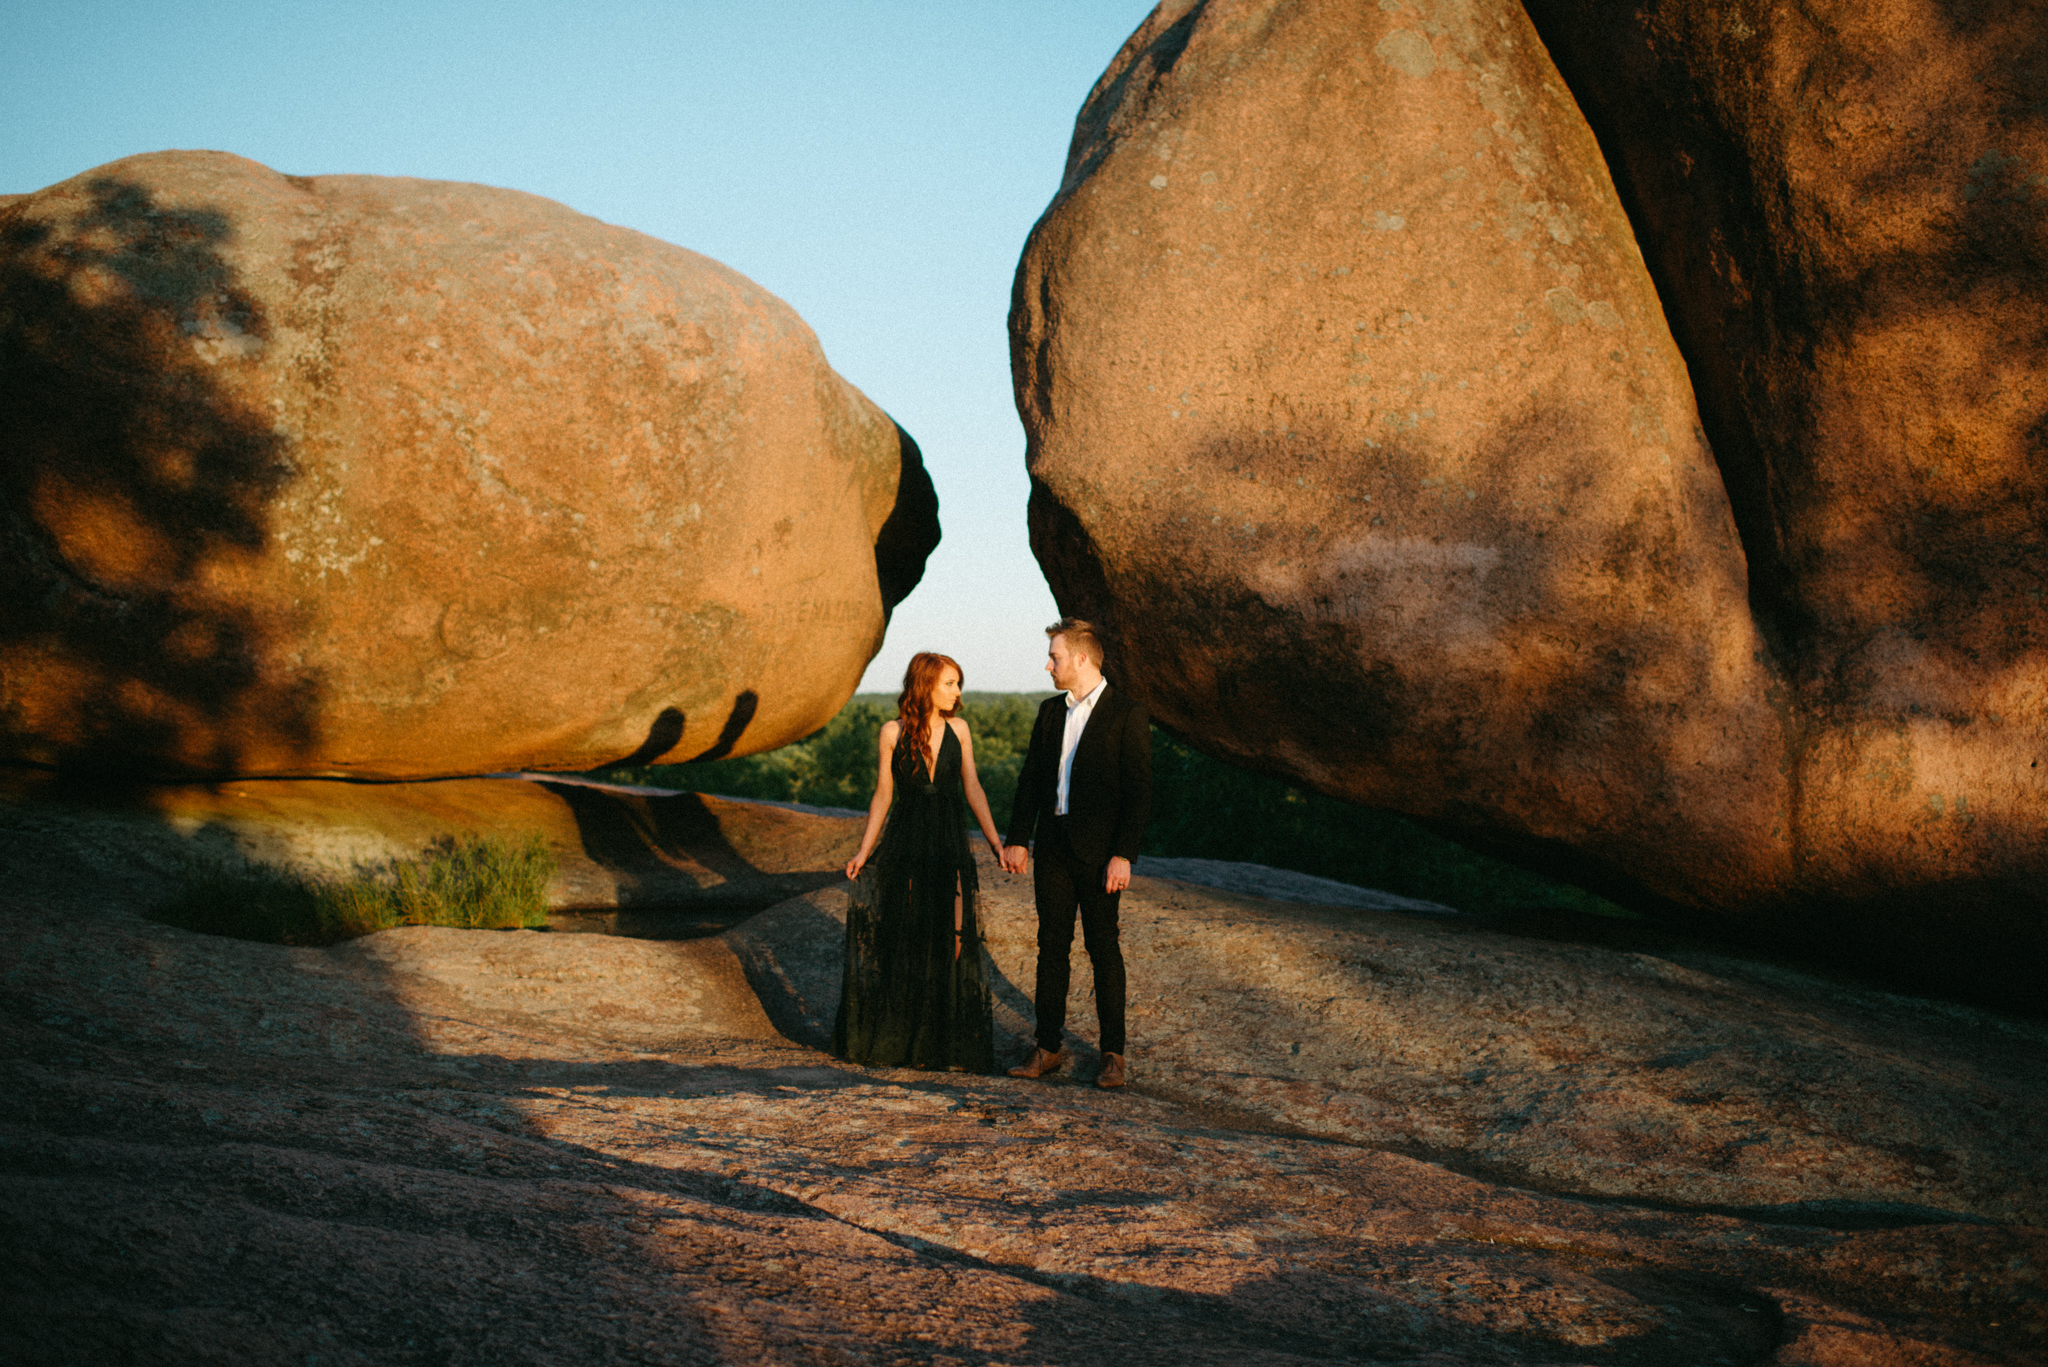 Zach and Rosalie - Missouri Wedding Photographer - Elephant rocks state park anniversary session -7186.jpg